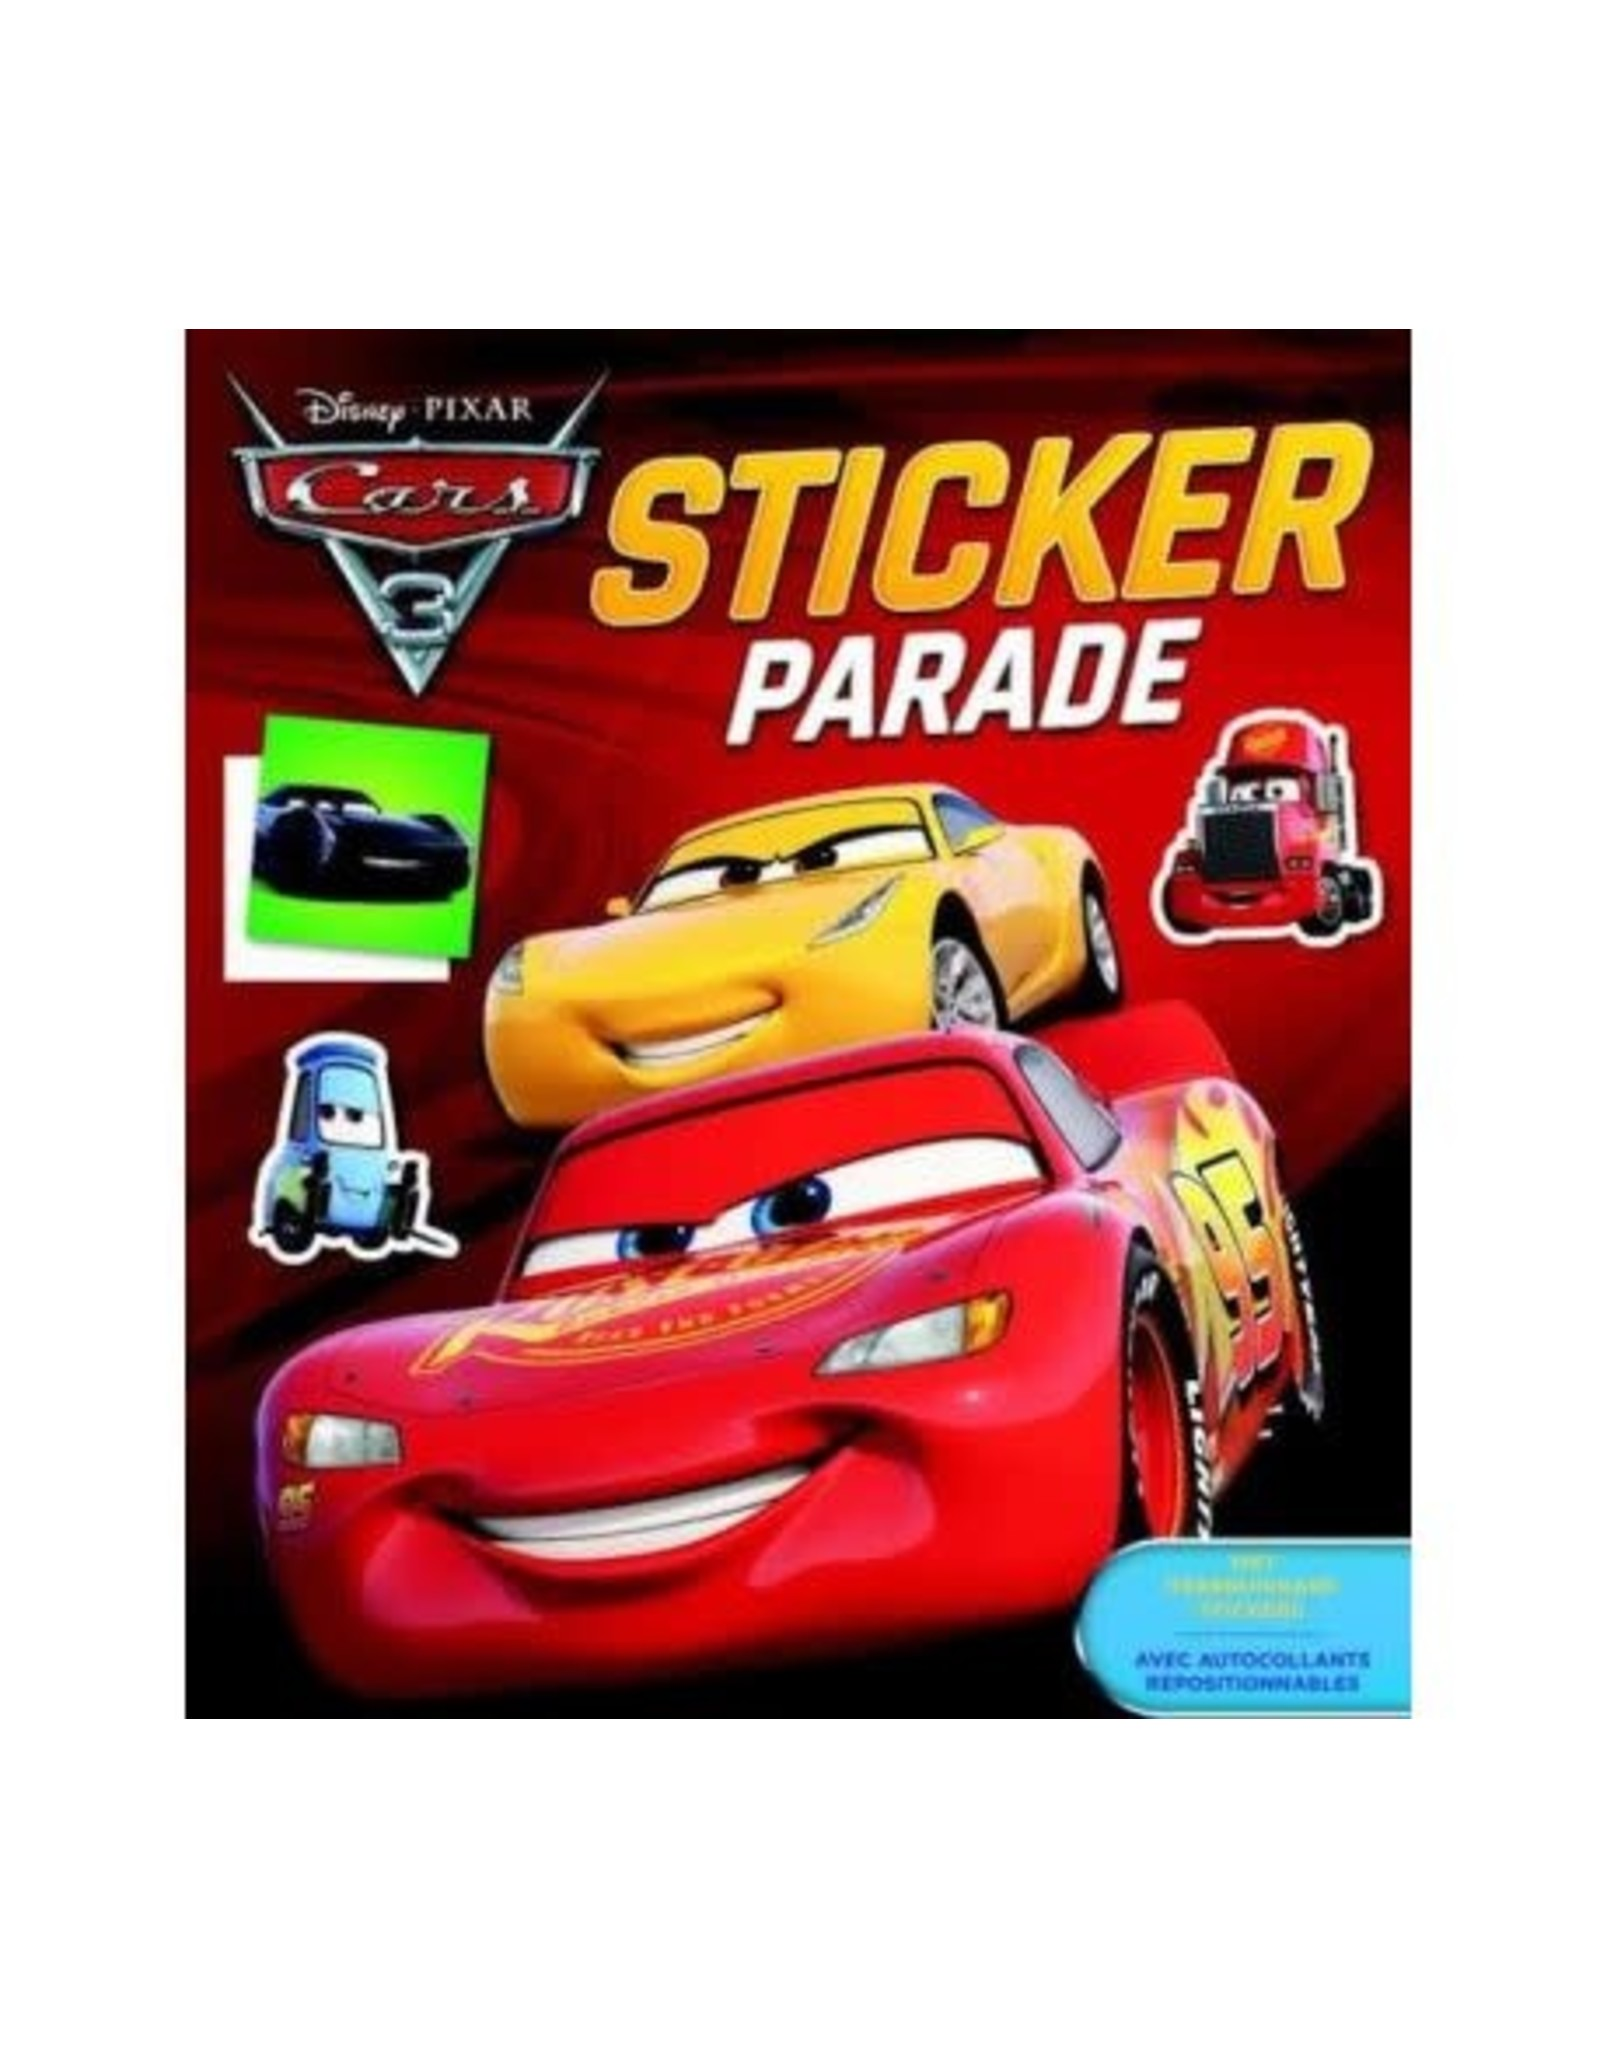 DELTAS Deltas Disney sticker parade Cars 3